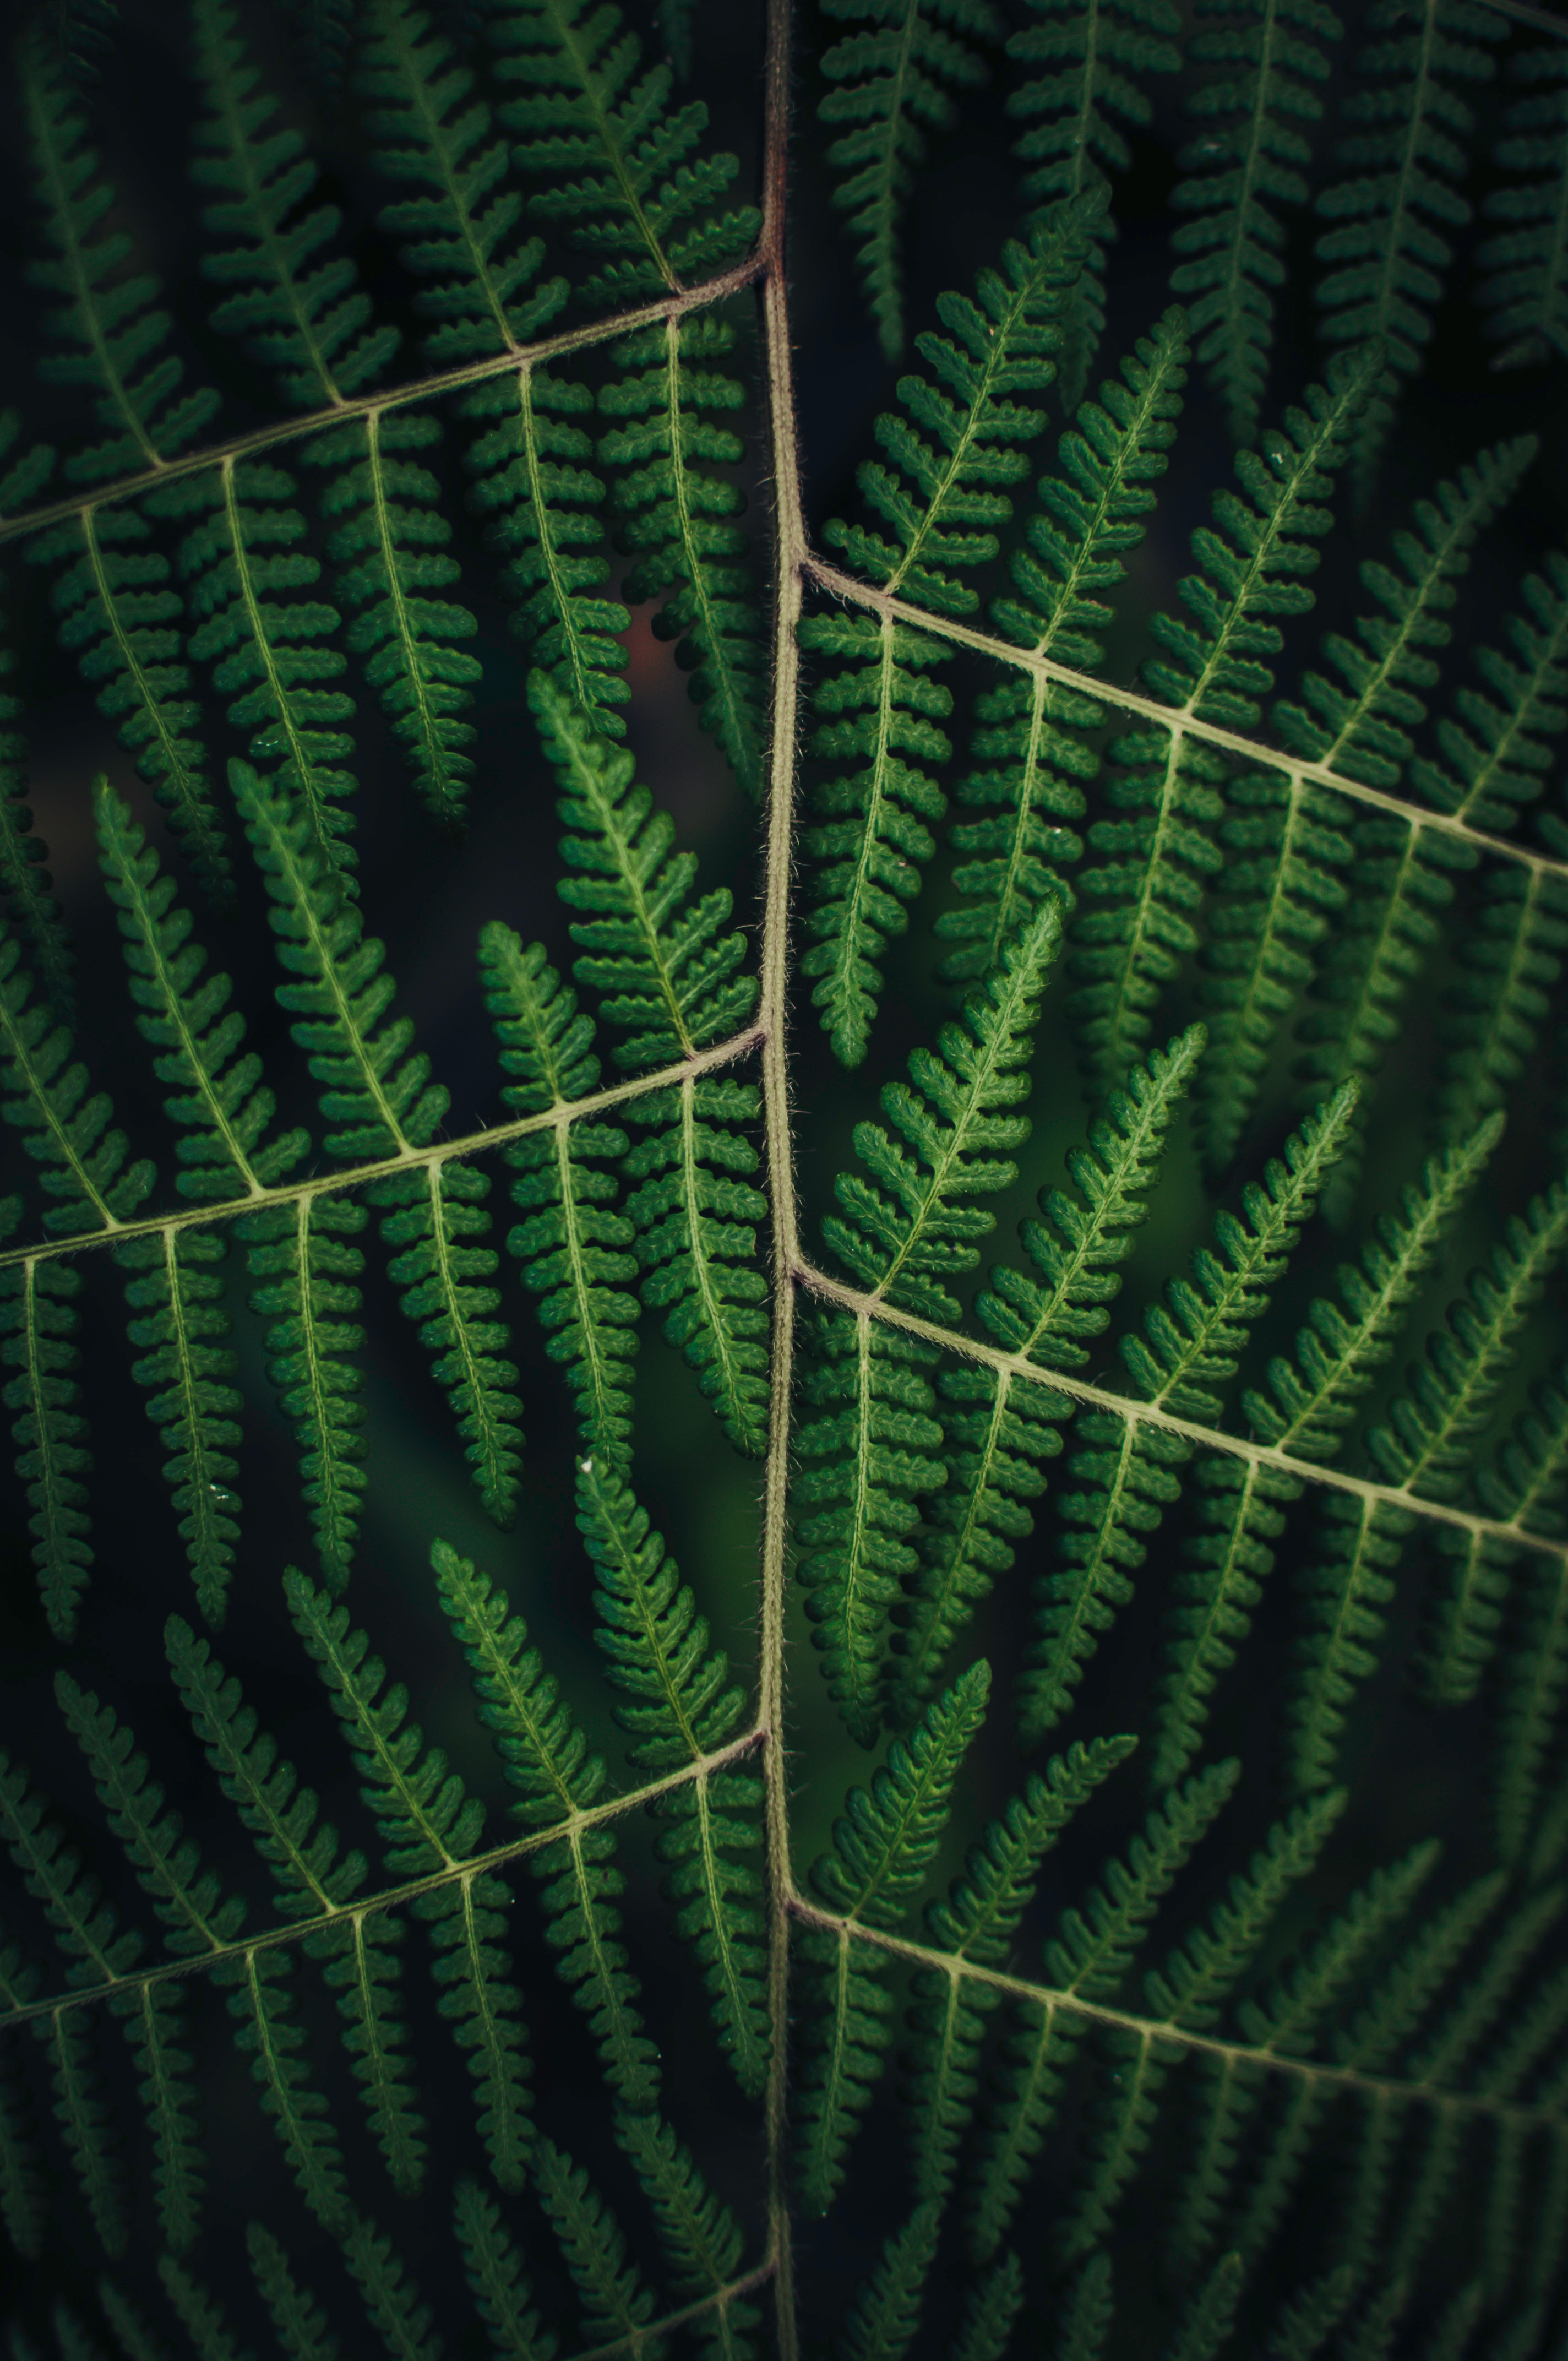 75655 download wallpaper Leaves, Plant, Macro, Fern, Carved screensavers and pictures for free